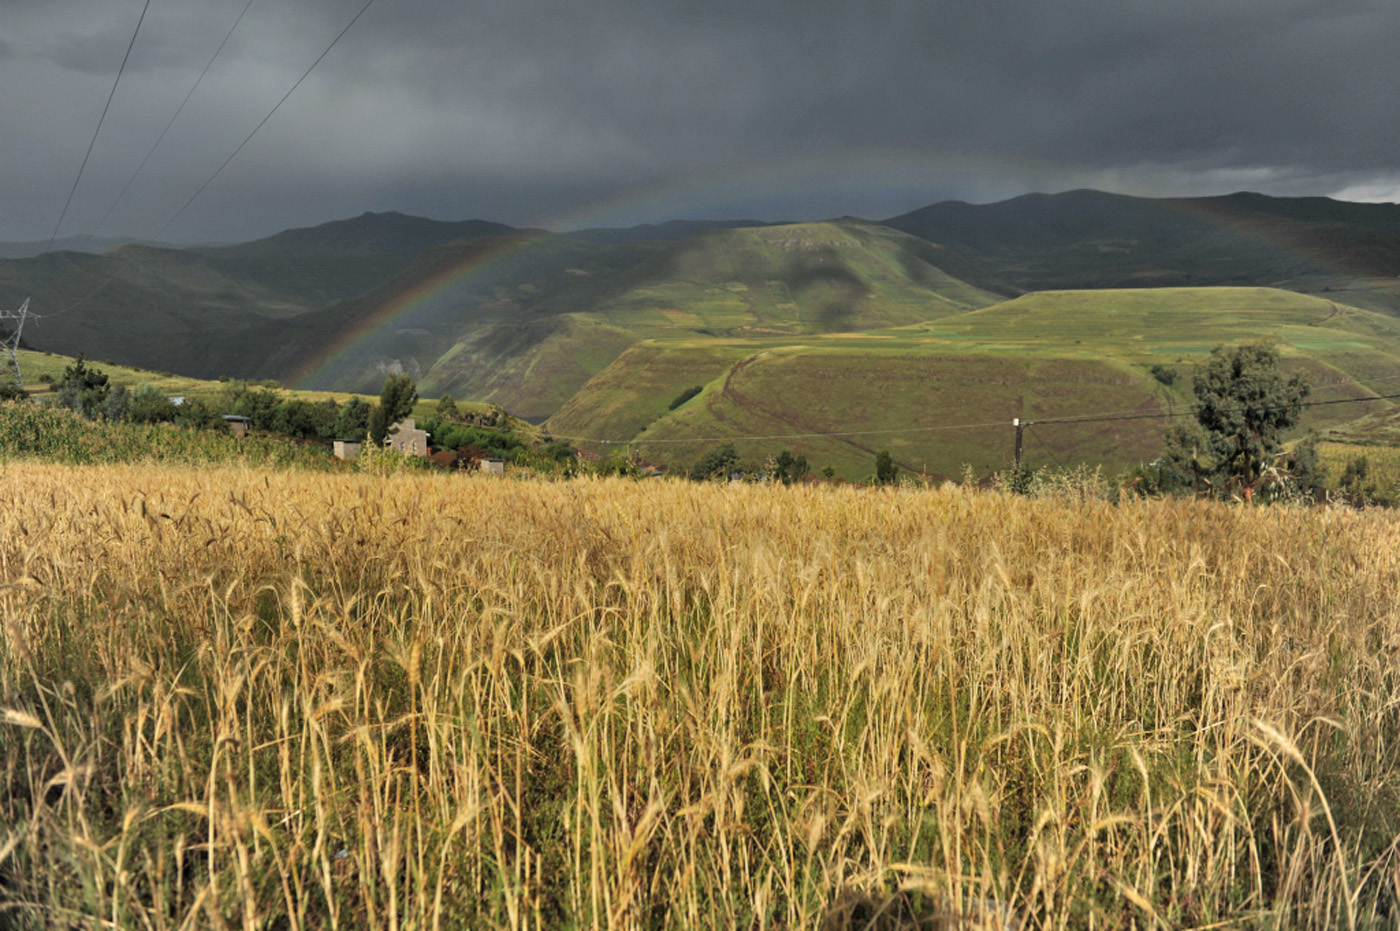 A wheat field in the Lesotho highlands near Ha Lajone